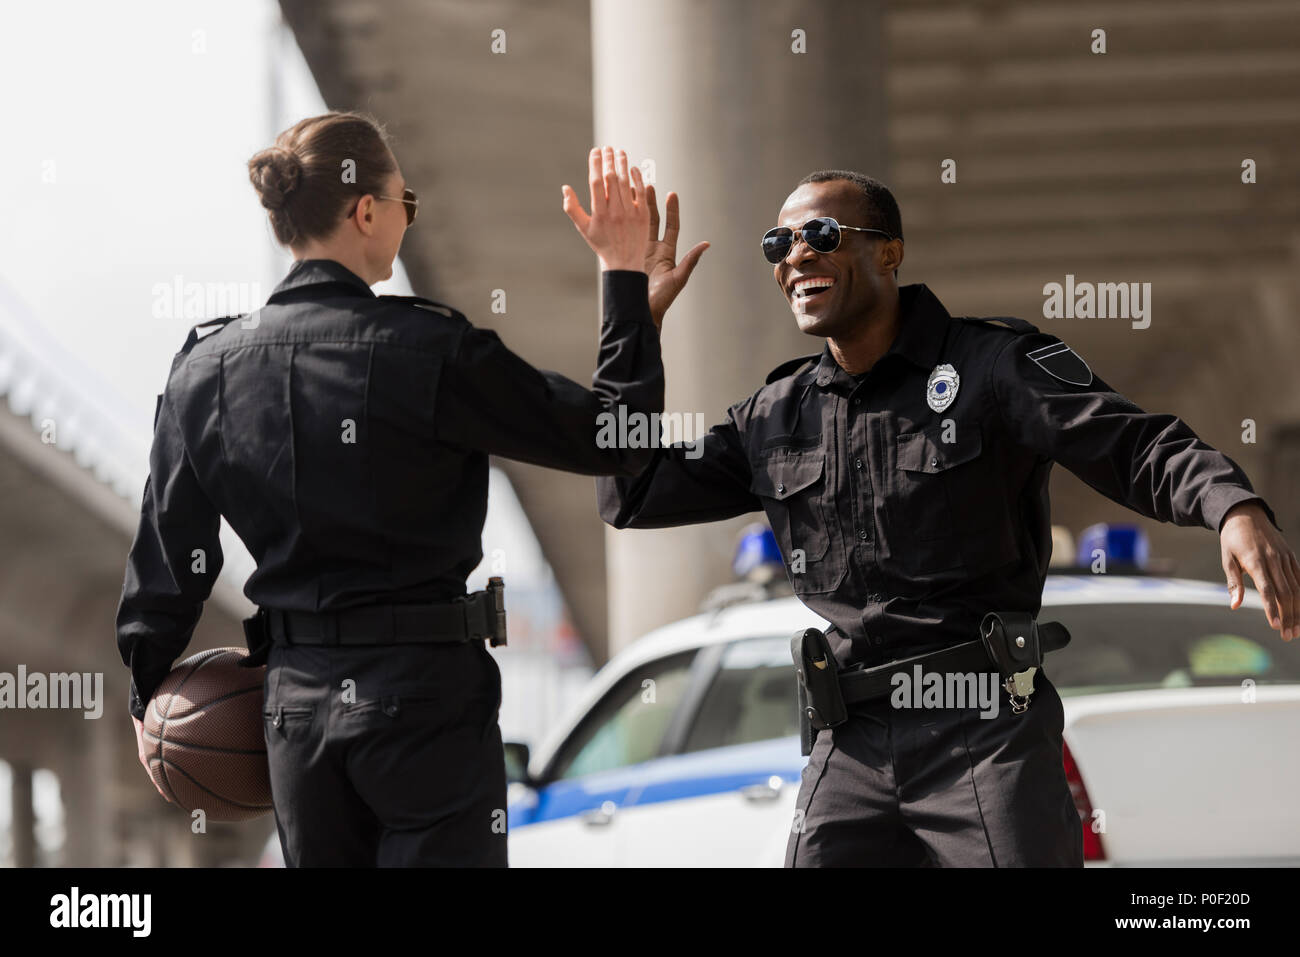 police officers with basketball ball giving high five - Stock Image